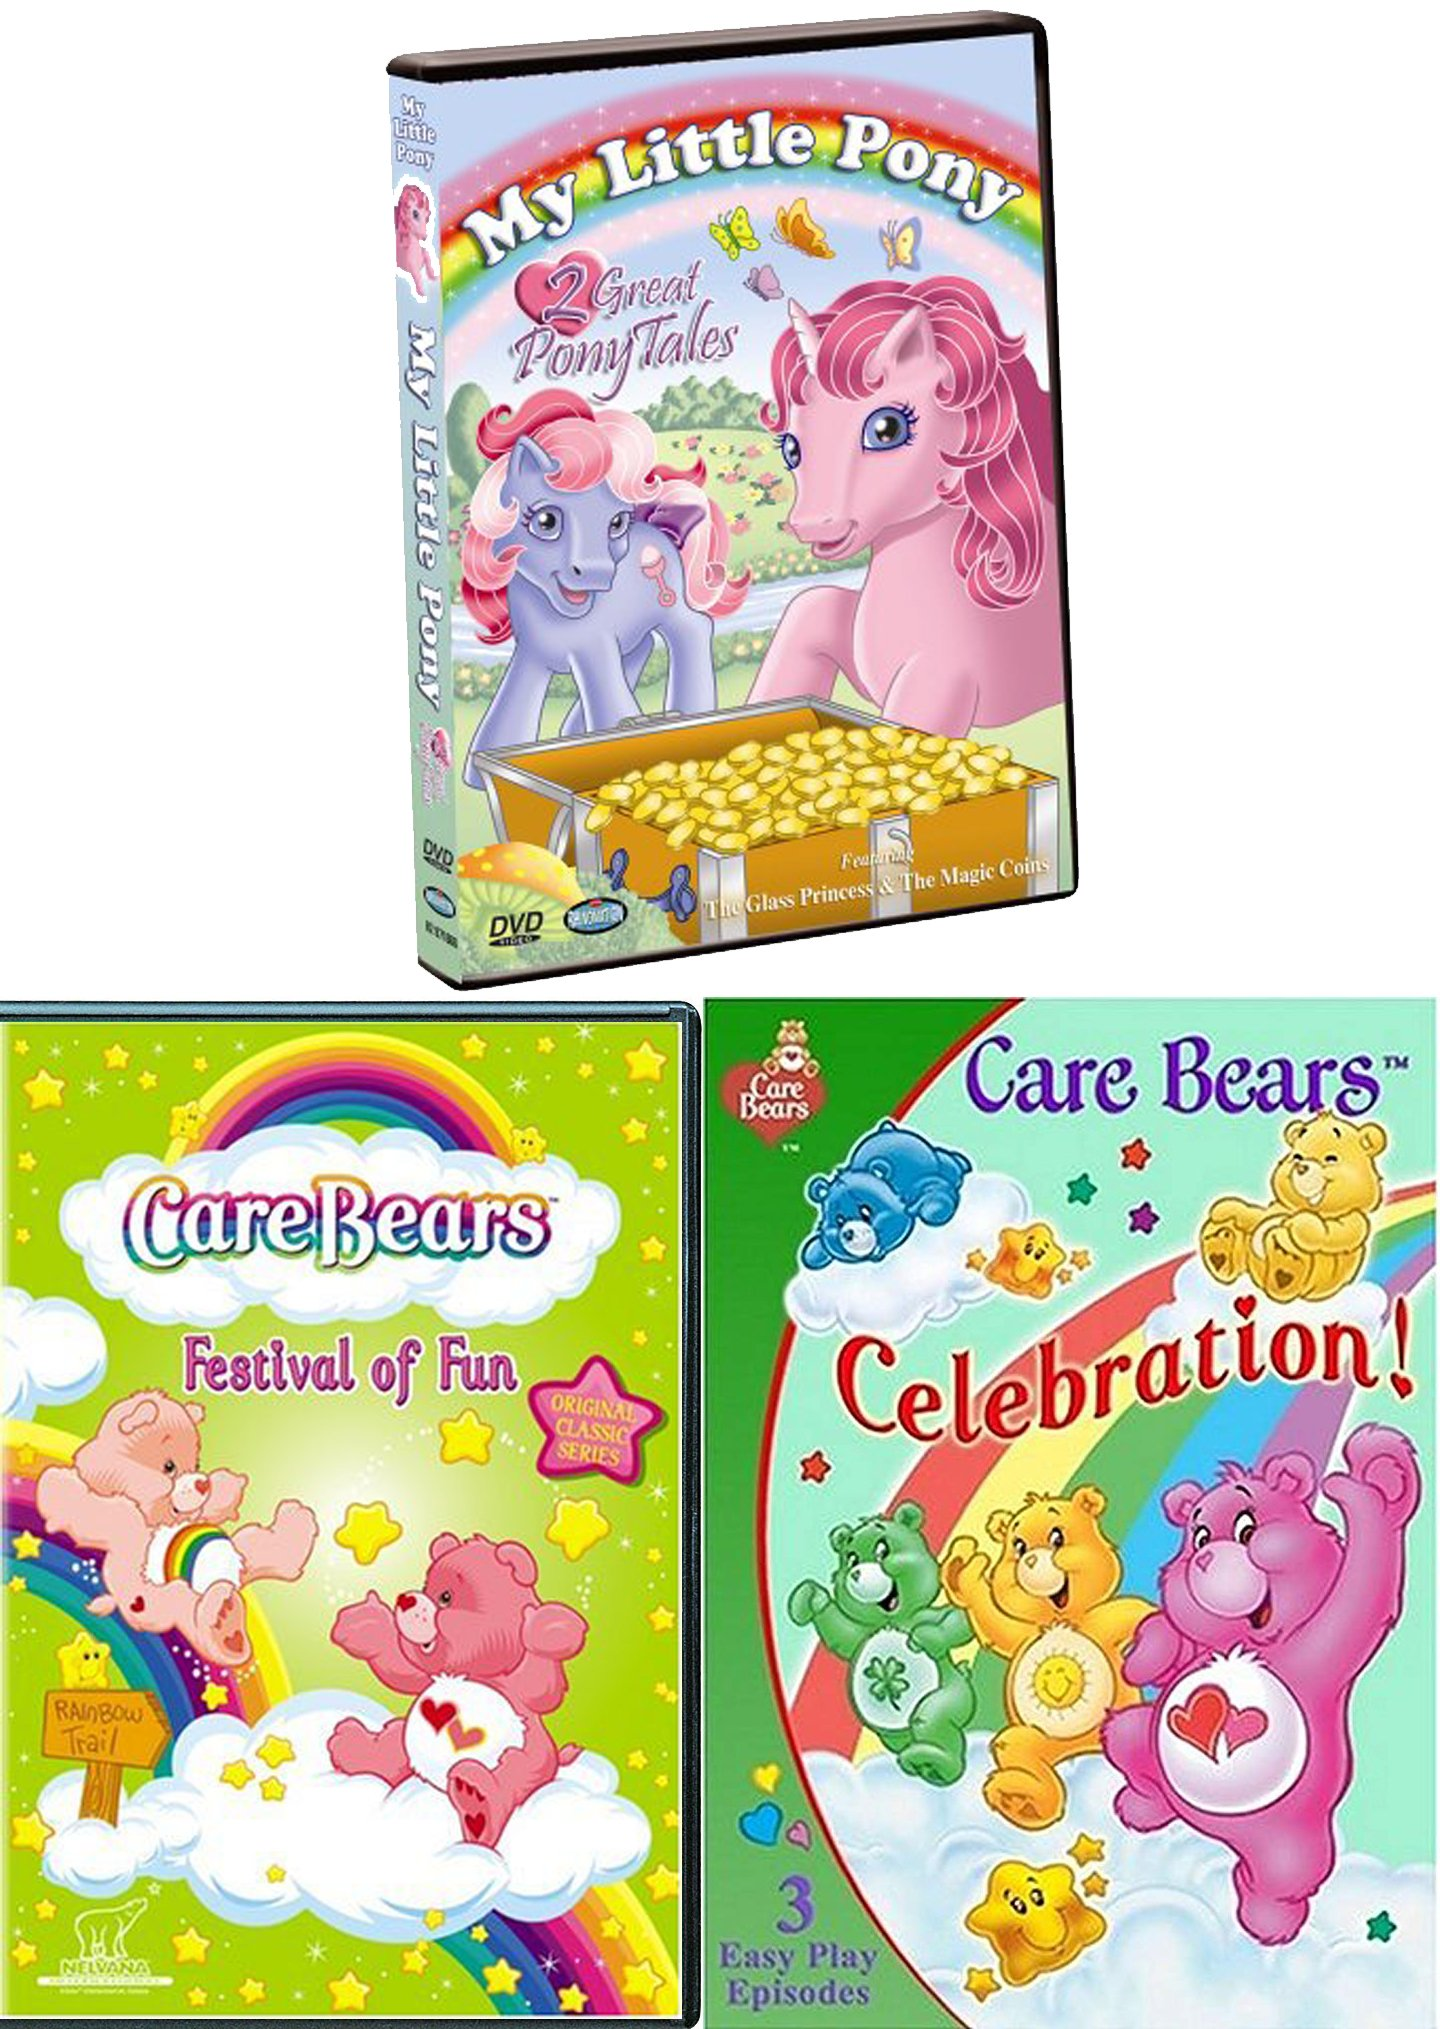 Ponies & Bear Tales My Little Pony Glass Princess & Magic Coins + CareBears Festival of Fun TV Episodes Care Bears Celebration Triple Pack Laugh / Parade / Trains / Big top / Fair / Music Video